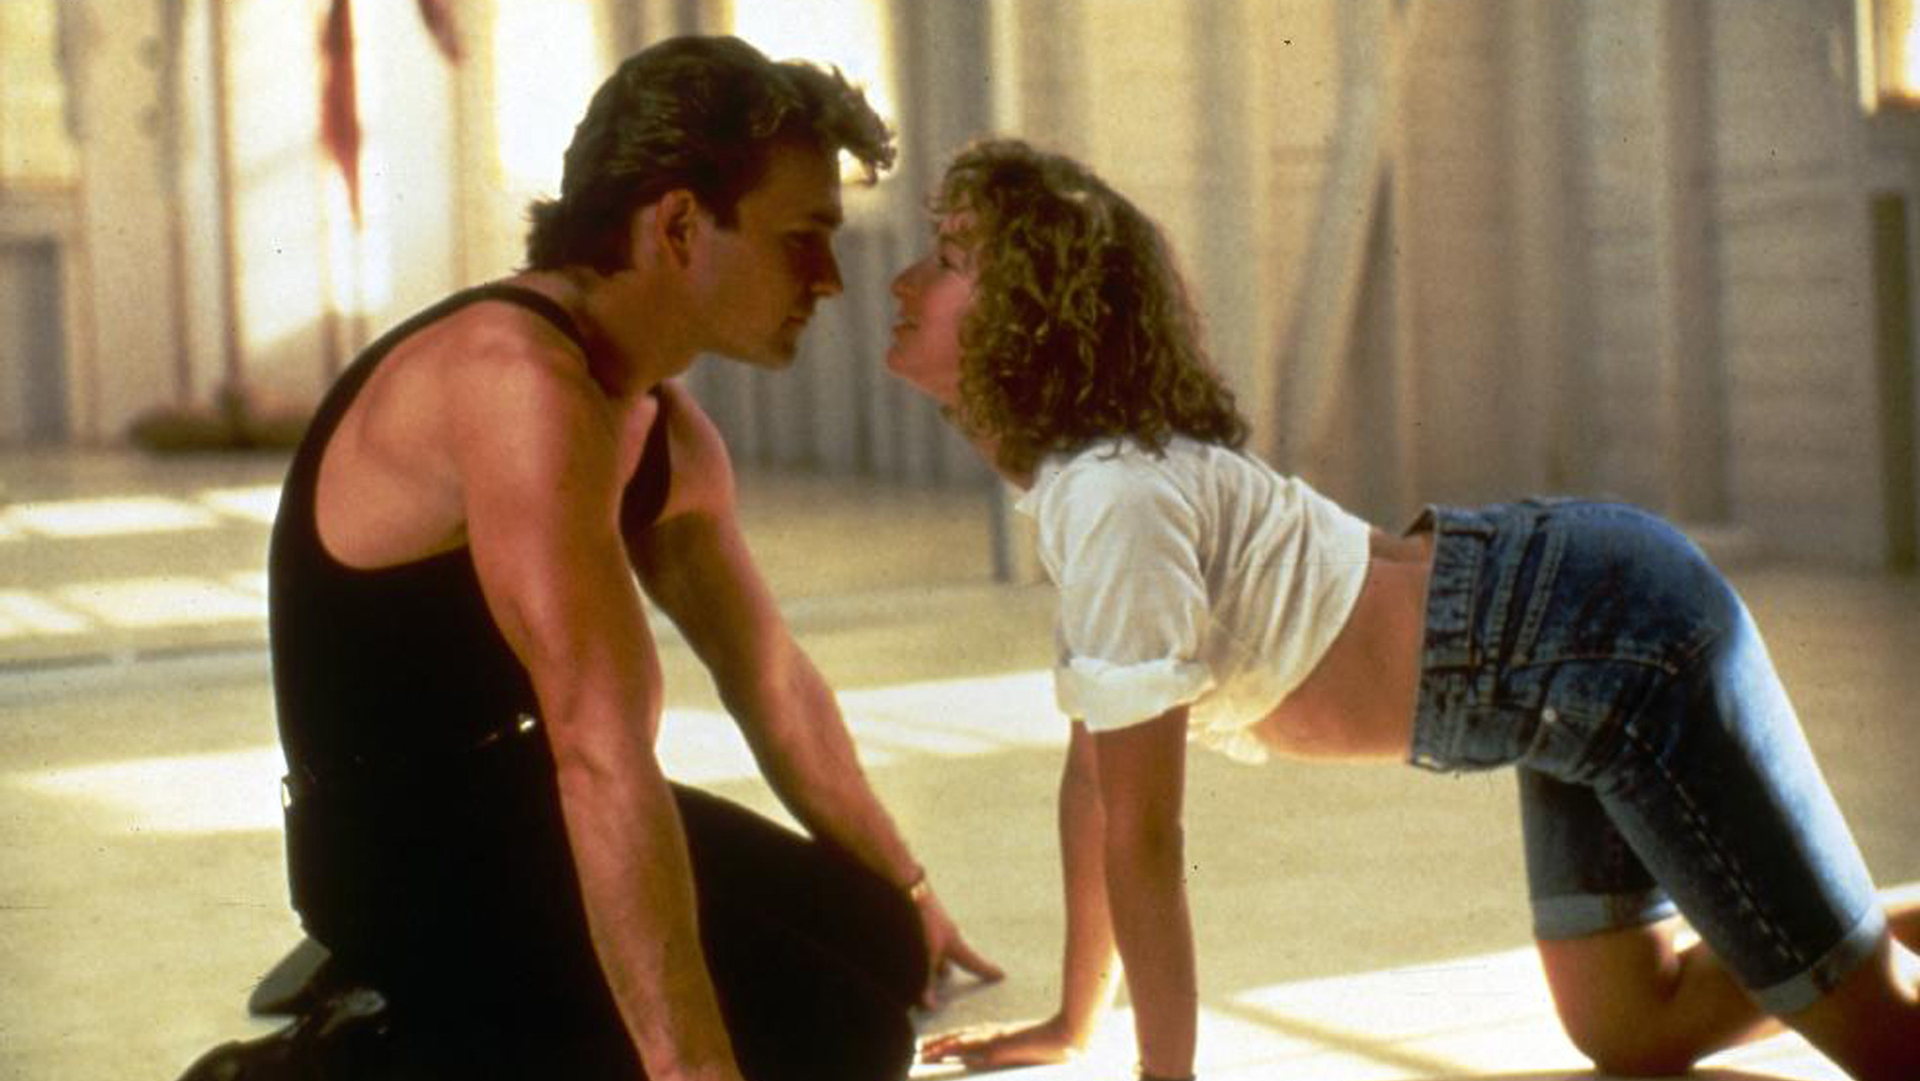 DIRTY DANCING | Houston | Alamo Drafthouse Cinema